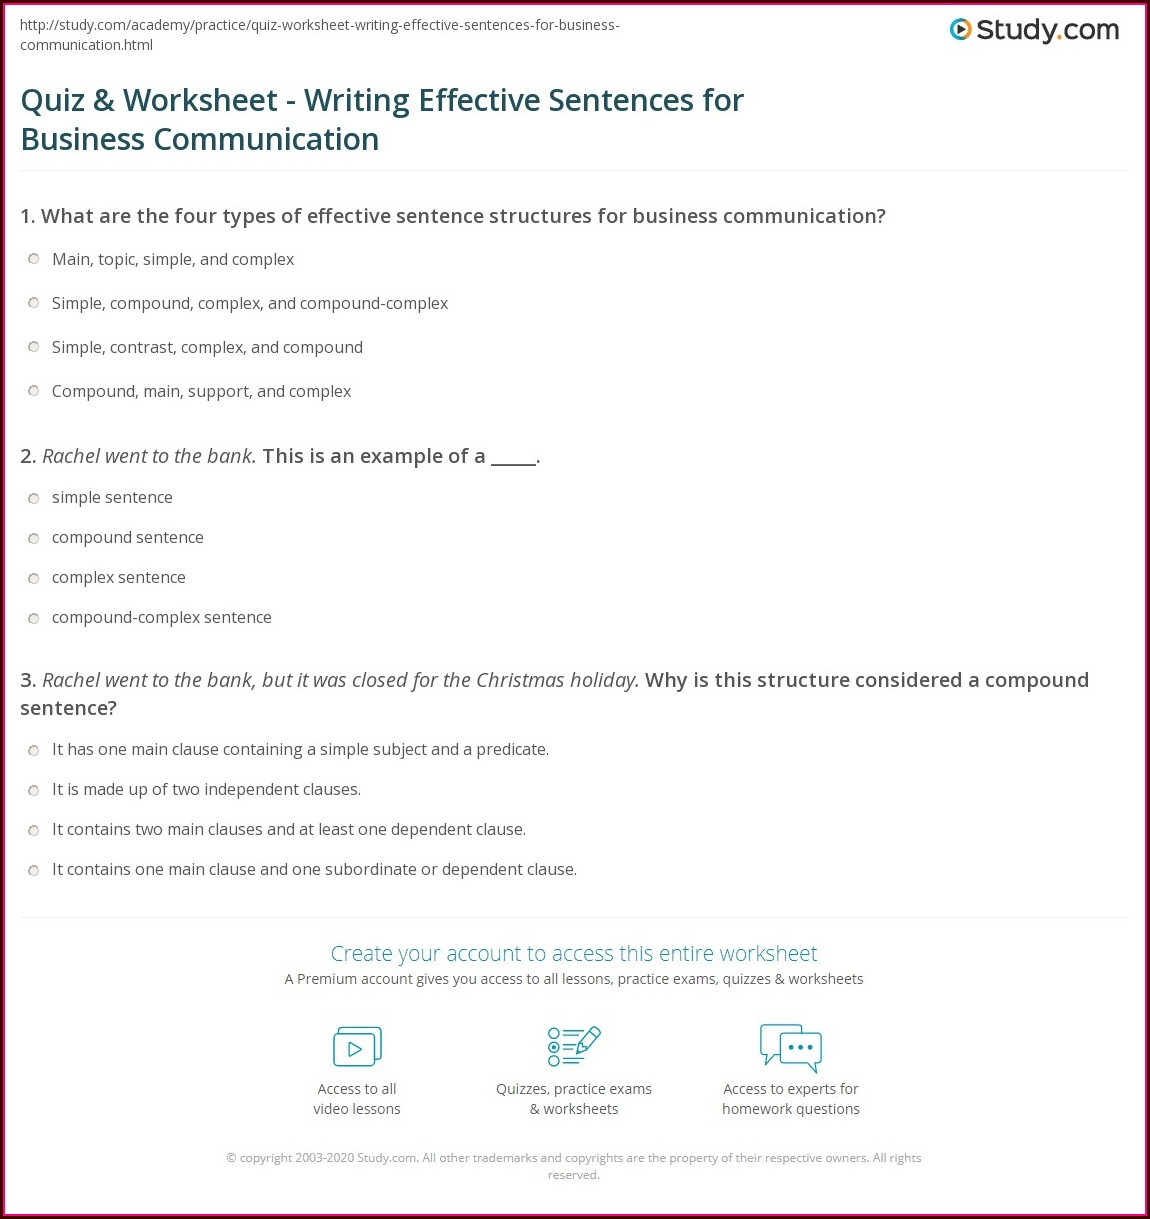 Writing Effective Sentences Worksheet Answers